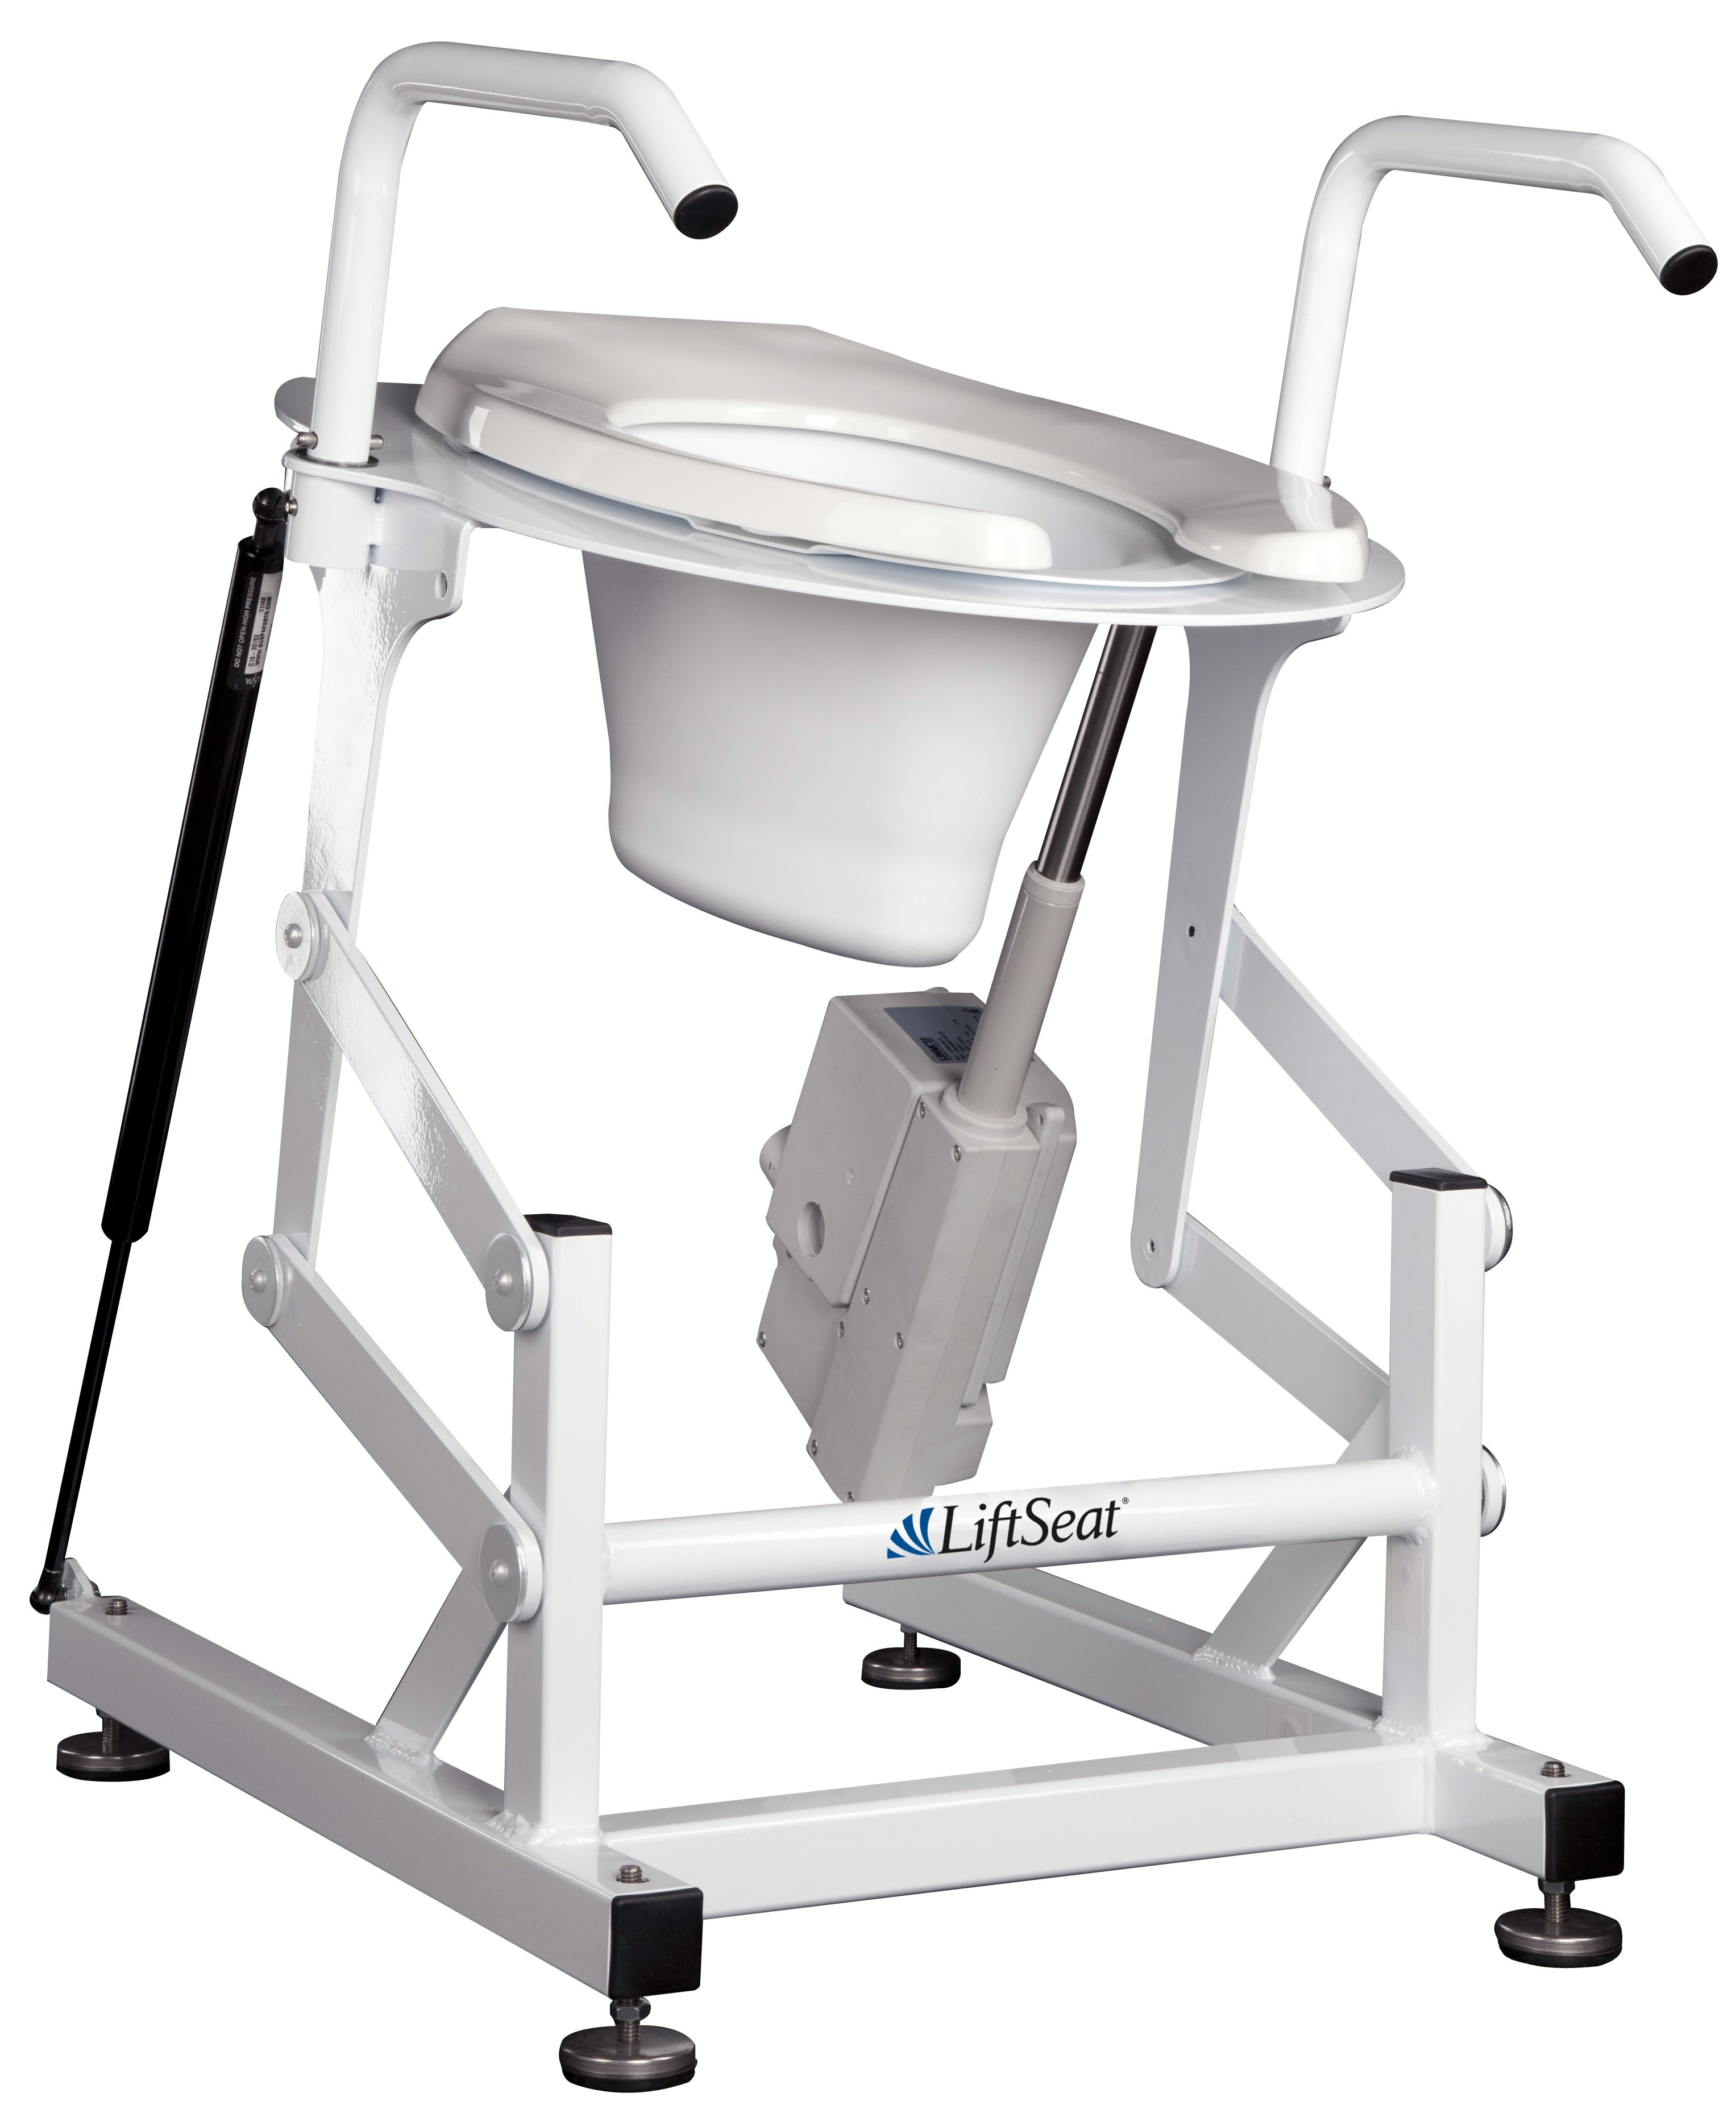 Liftseat Home Powered Toilet Lift